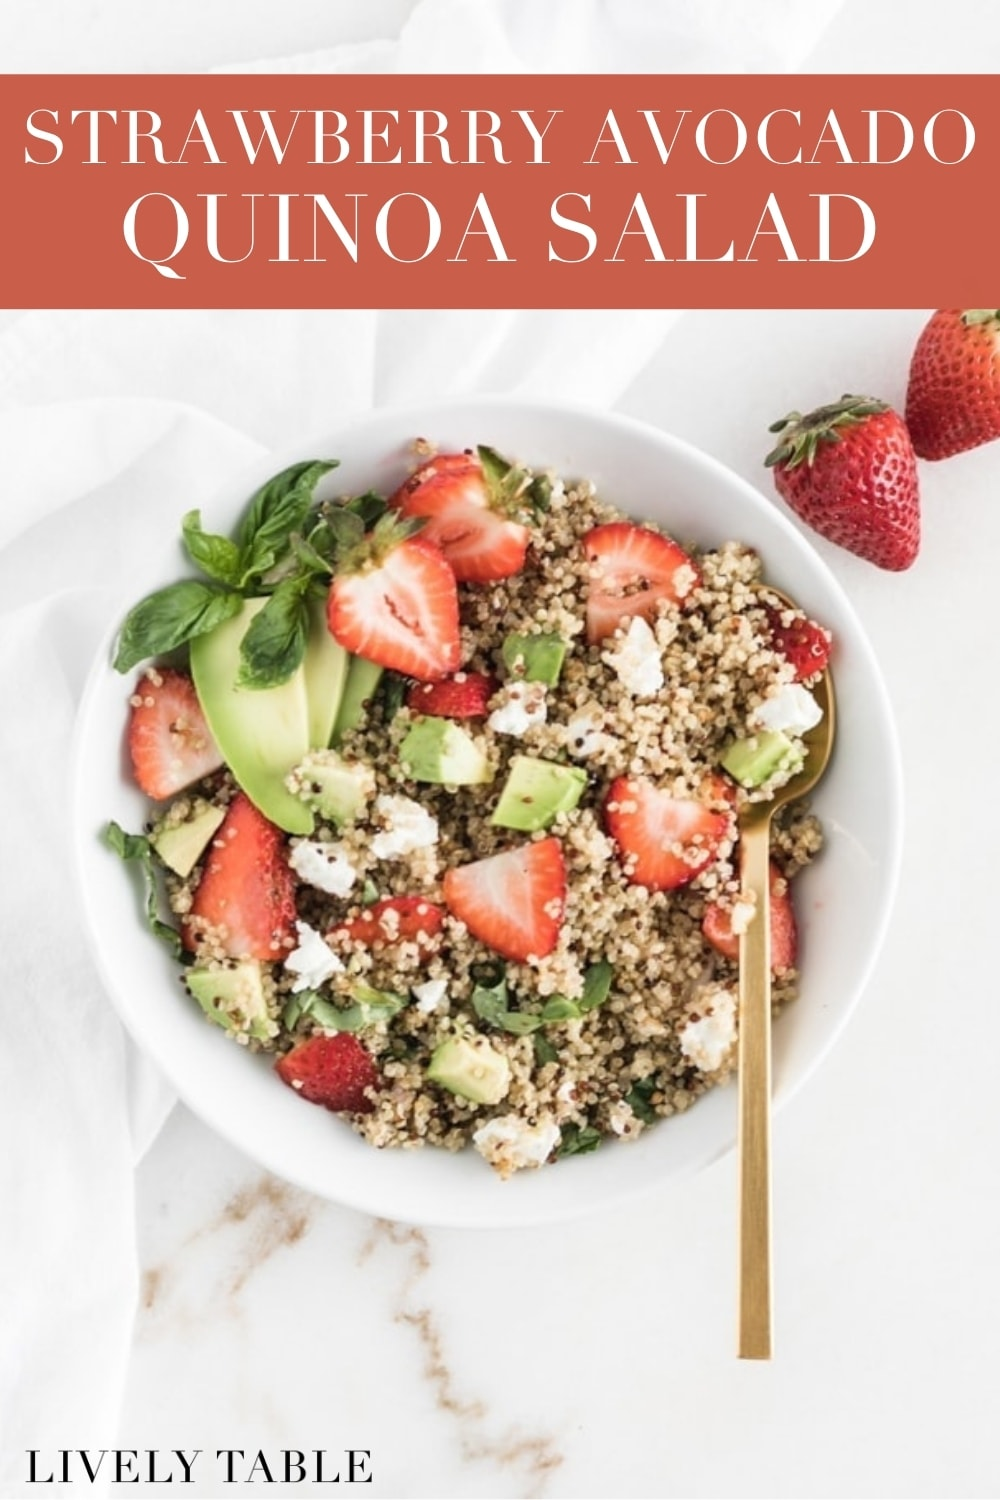 This Strawberry Avocado Quinoa Salad is a delicious, wholesome dish that uses the best of summer strawberries in a satisfying, vegetarian lunch or a fresh, whole grain side dish! #vegetarian #veganoption #sidedish #salads #strawberrysalad #quinoa #avocado #goatcheese #salads